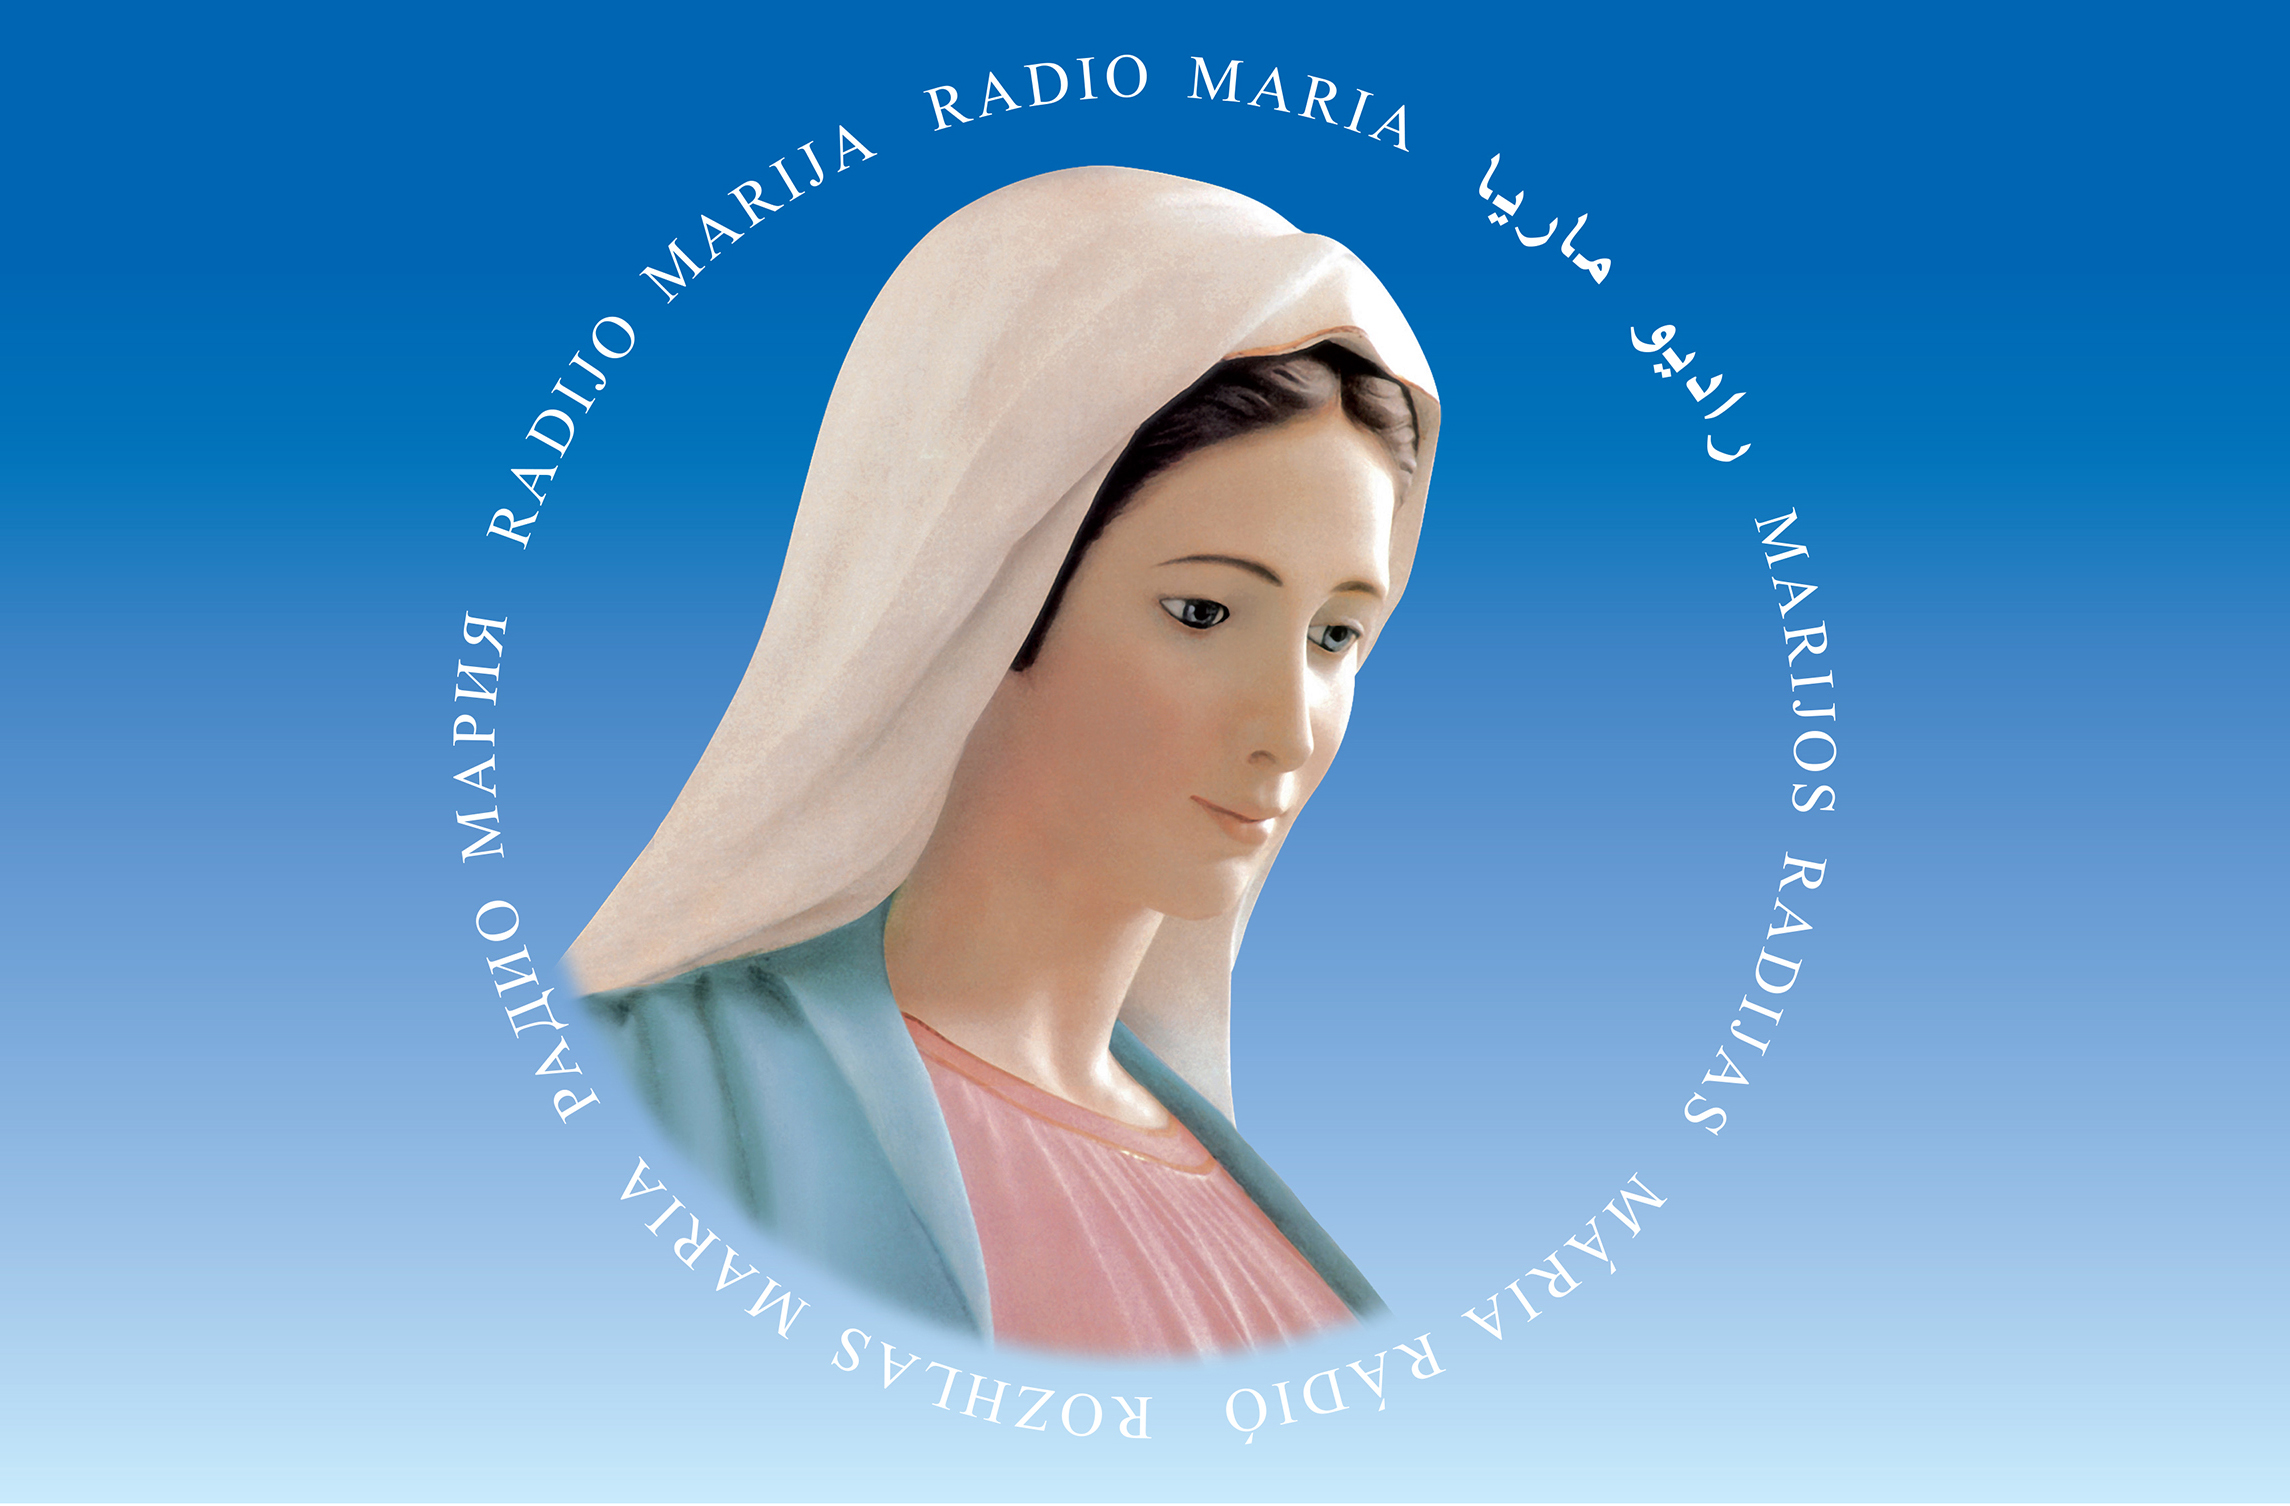 RADIO MARIA IN THE WORLD